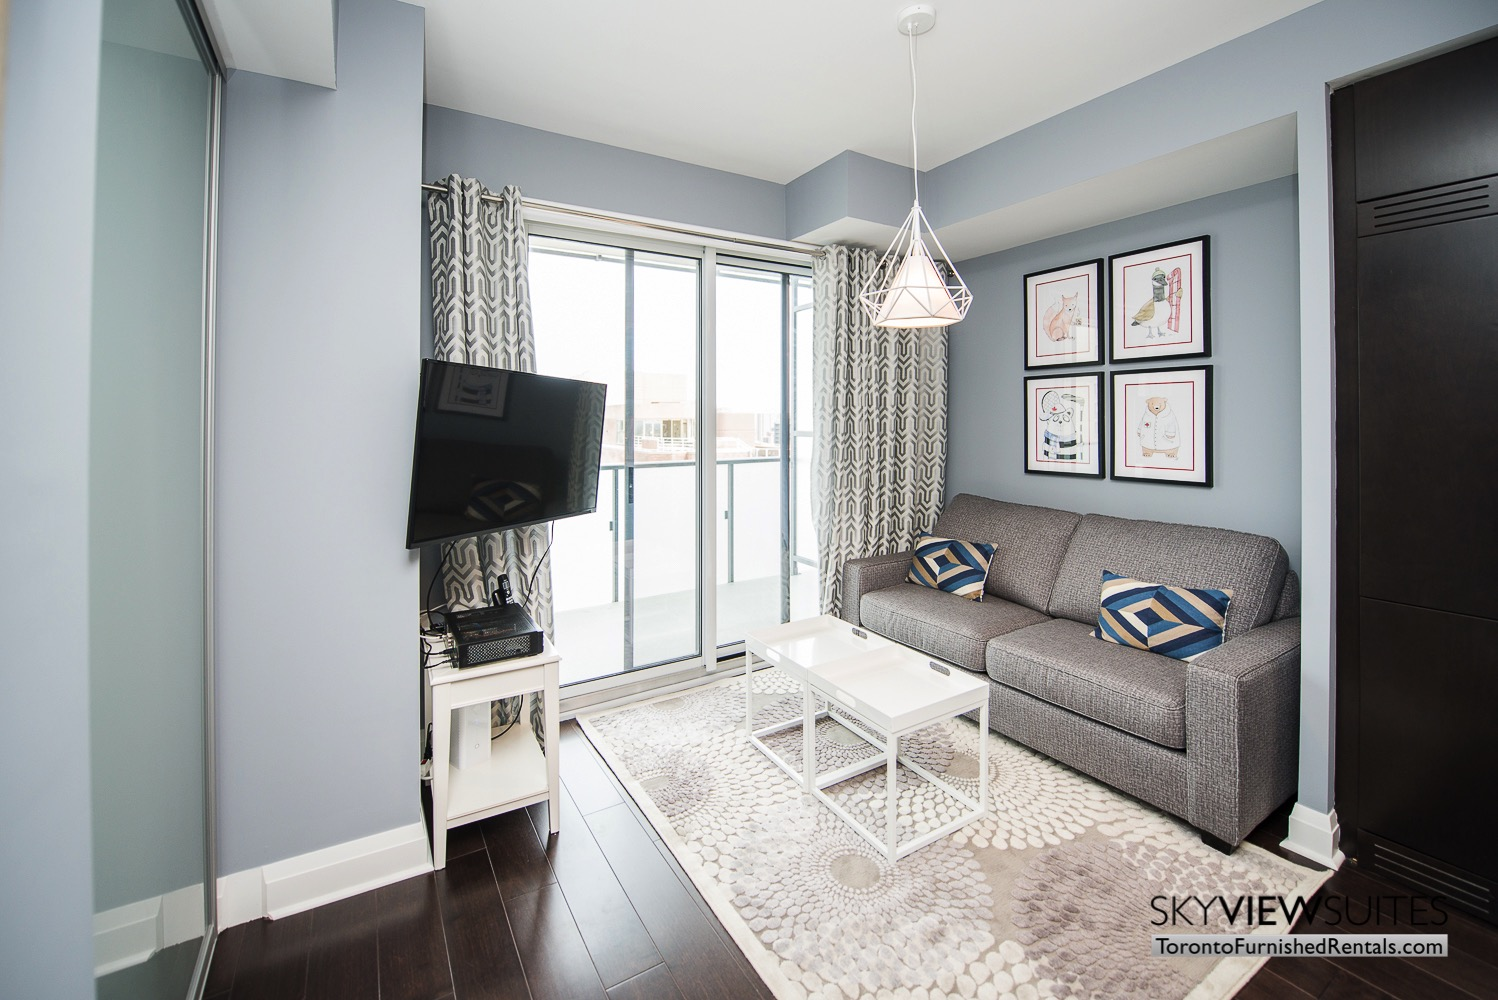 furnished apartments toronto Varsity couch